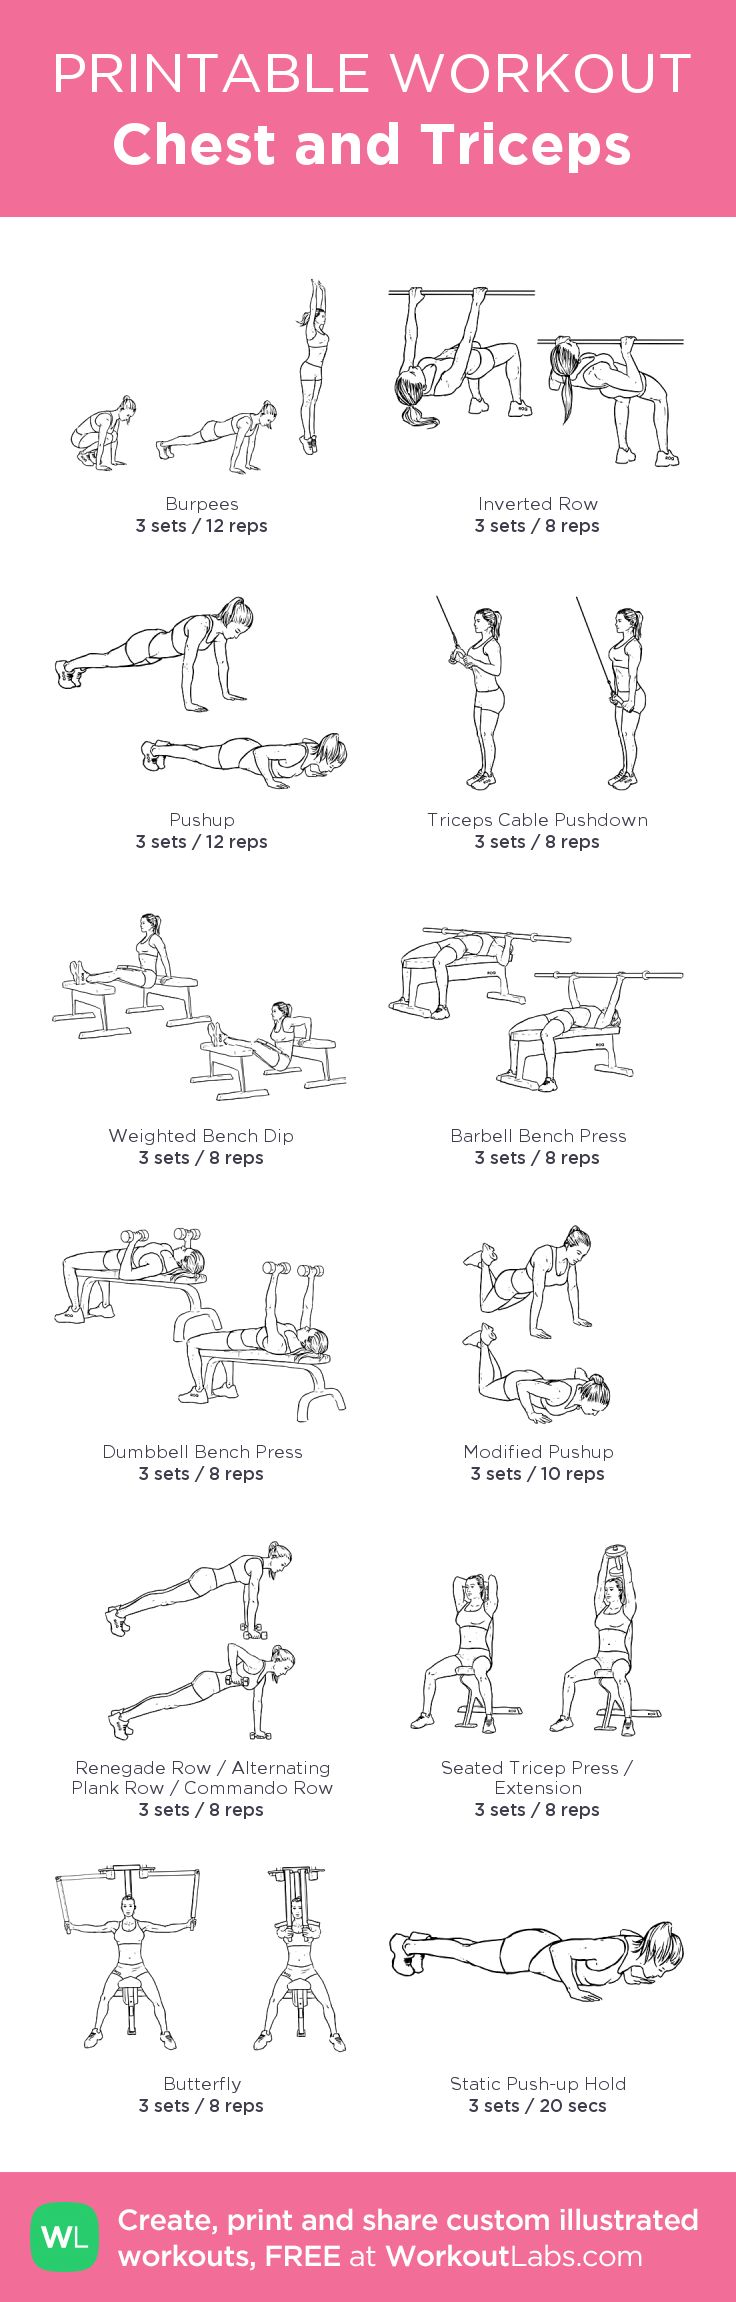 Chest and Triceps: my custom printable workout by @WorkoutLabs #workoutlabs…